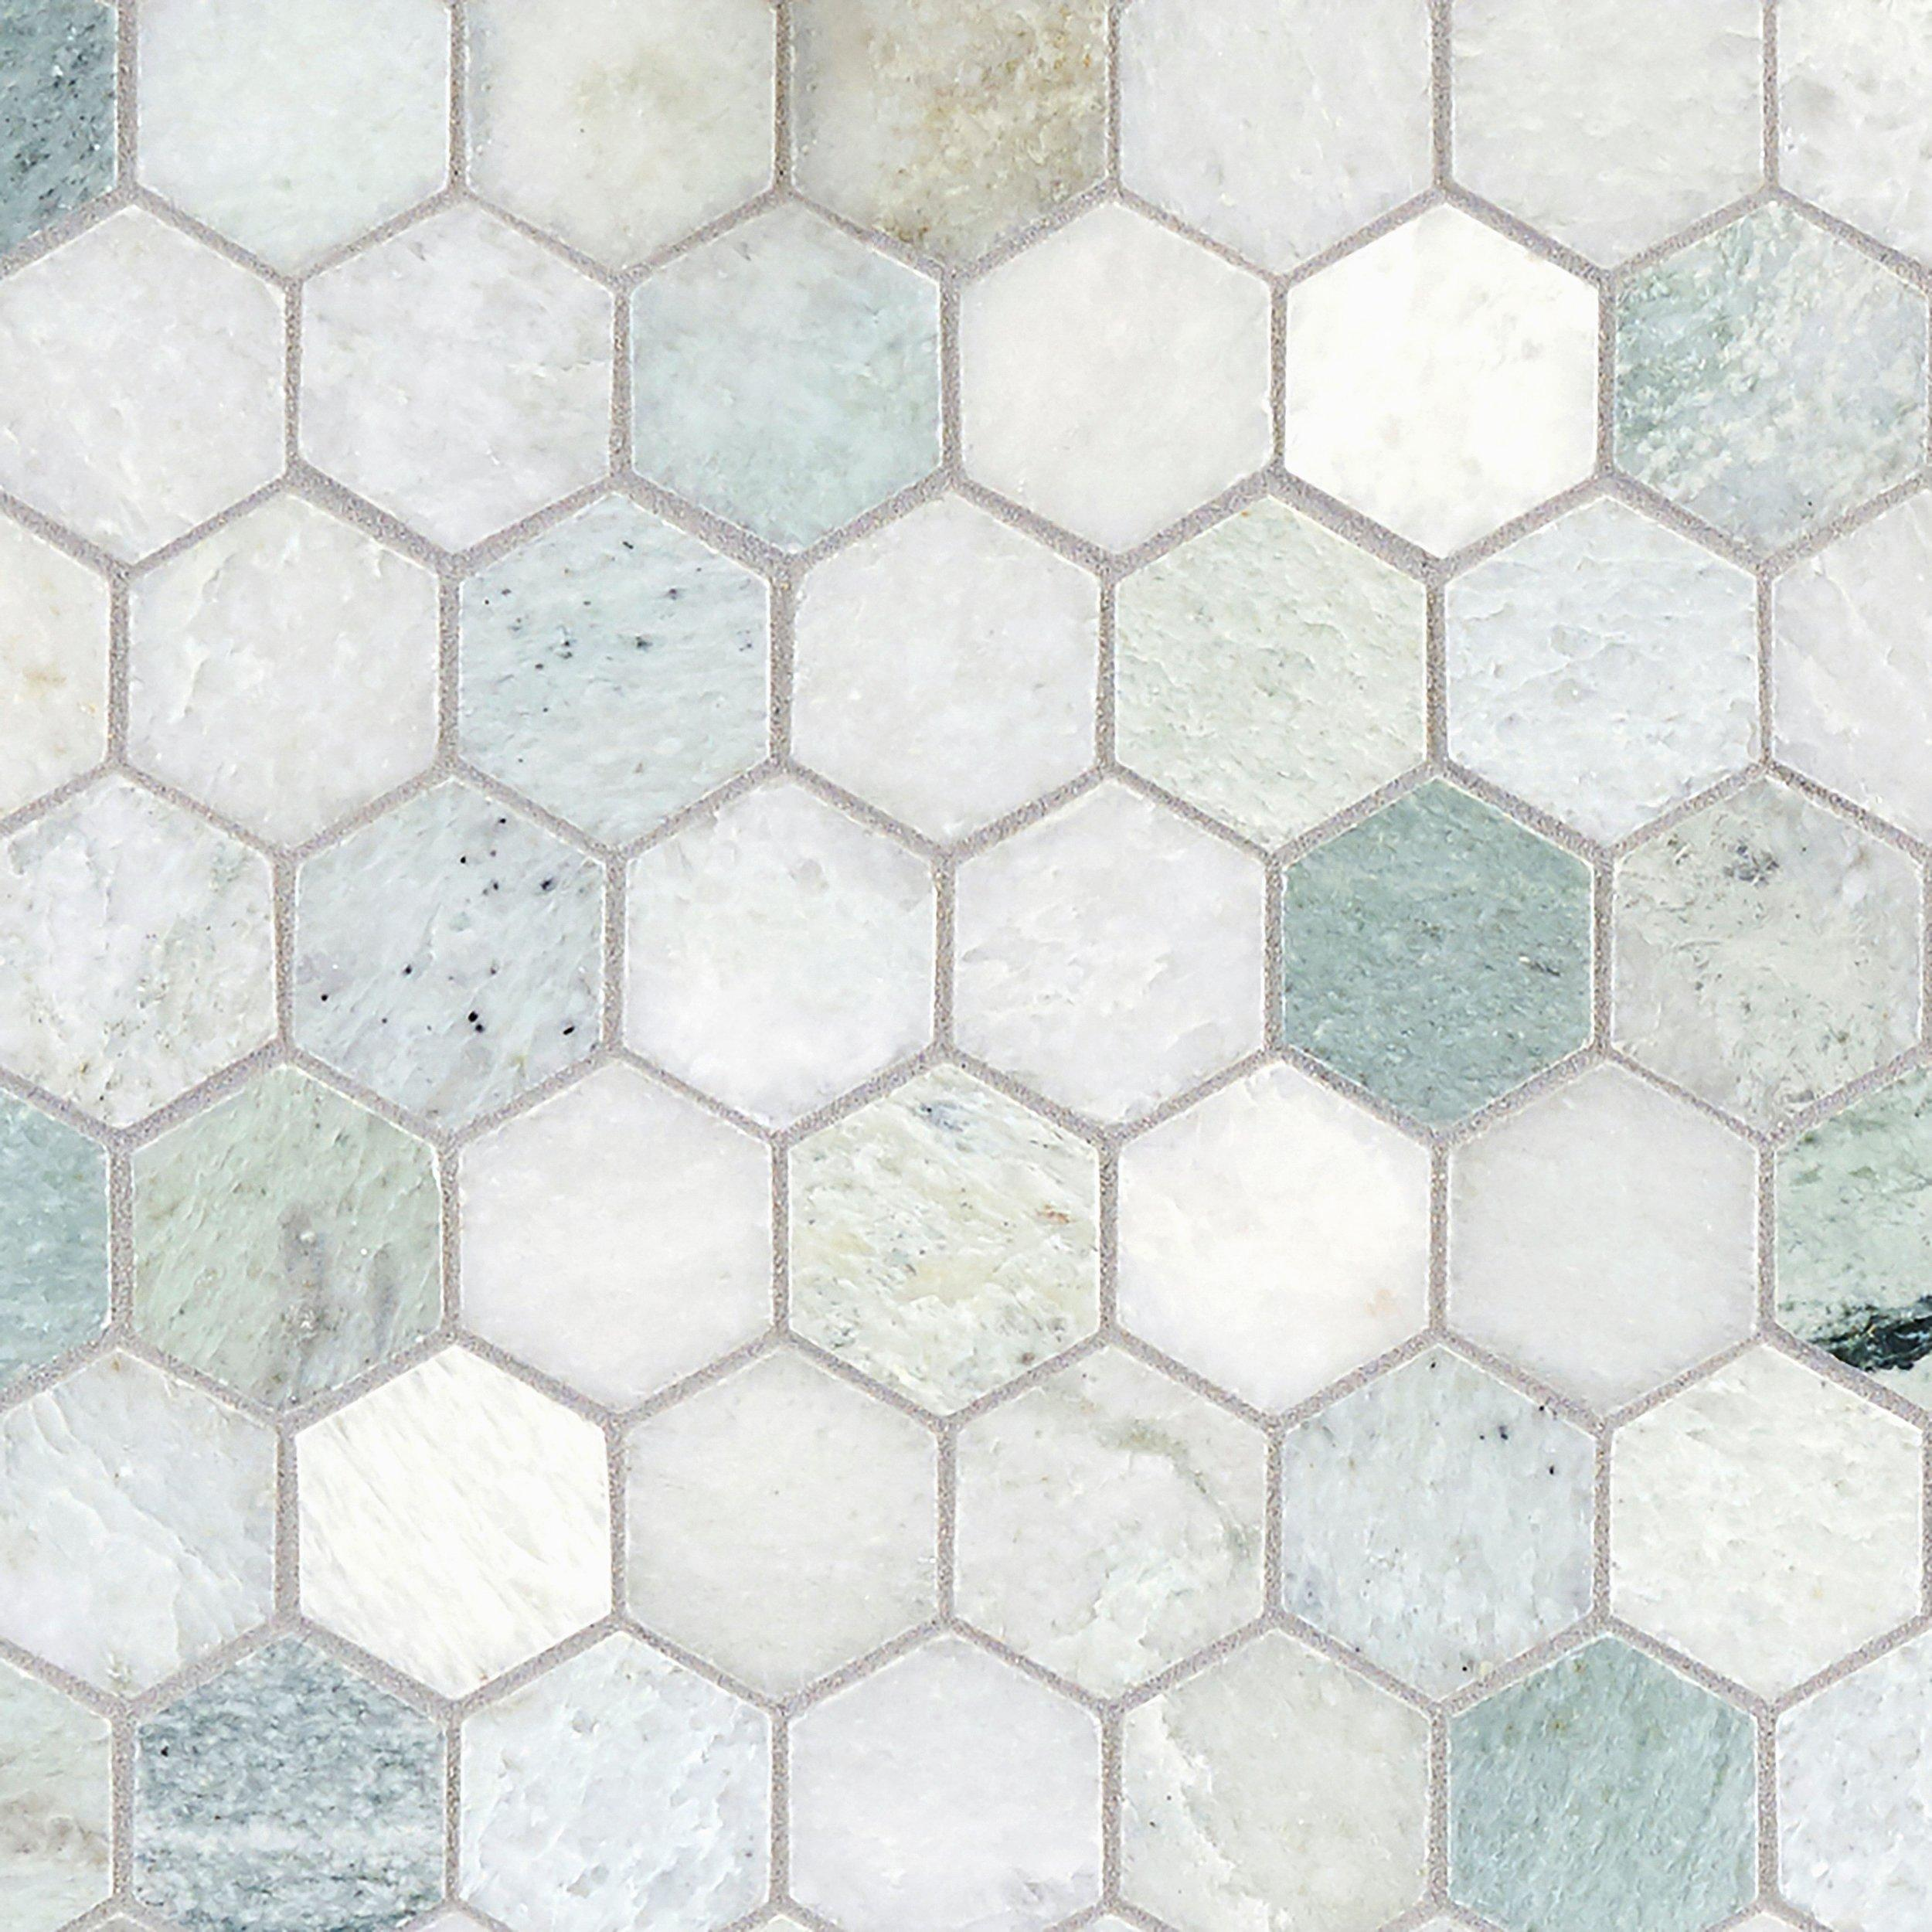 Caribbean Green Hexagon Tumbled Marble Mosaic 12 X 12 100052604 Floor And Decor